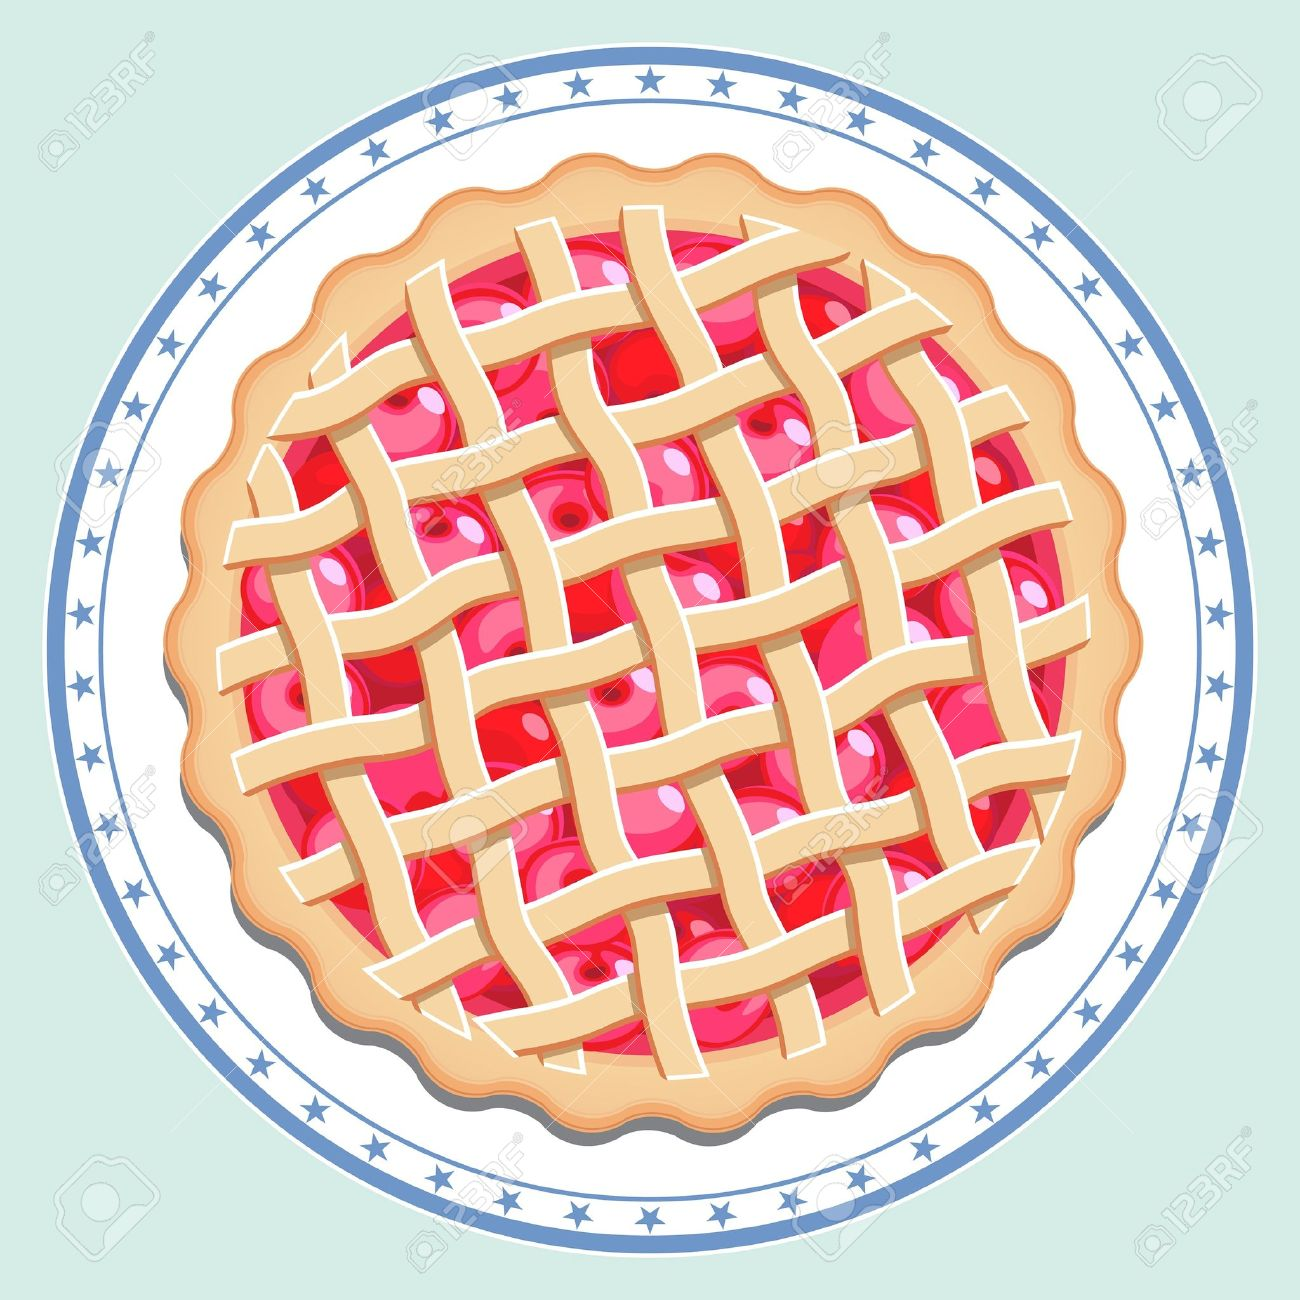 Pie clipart top view 2 » Clipart Station.